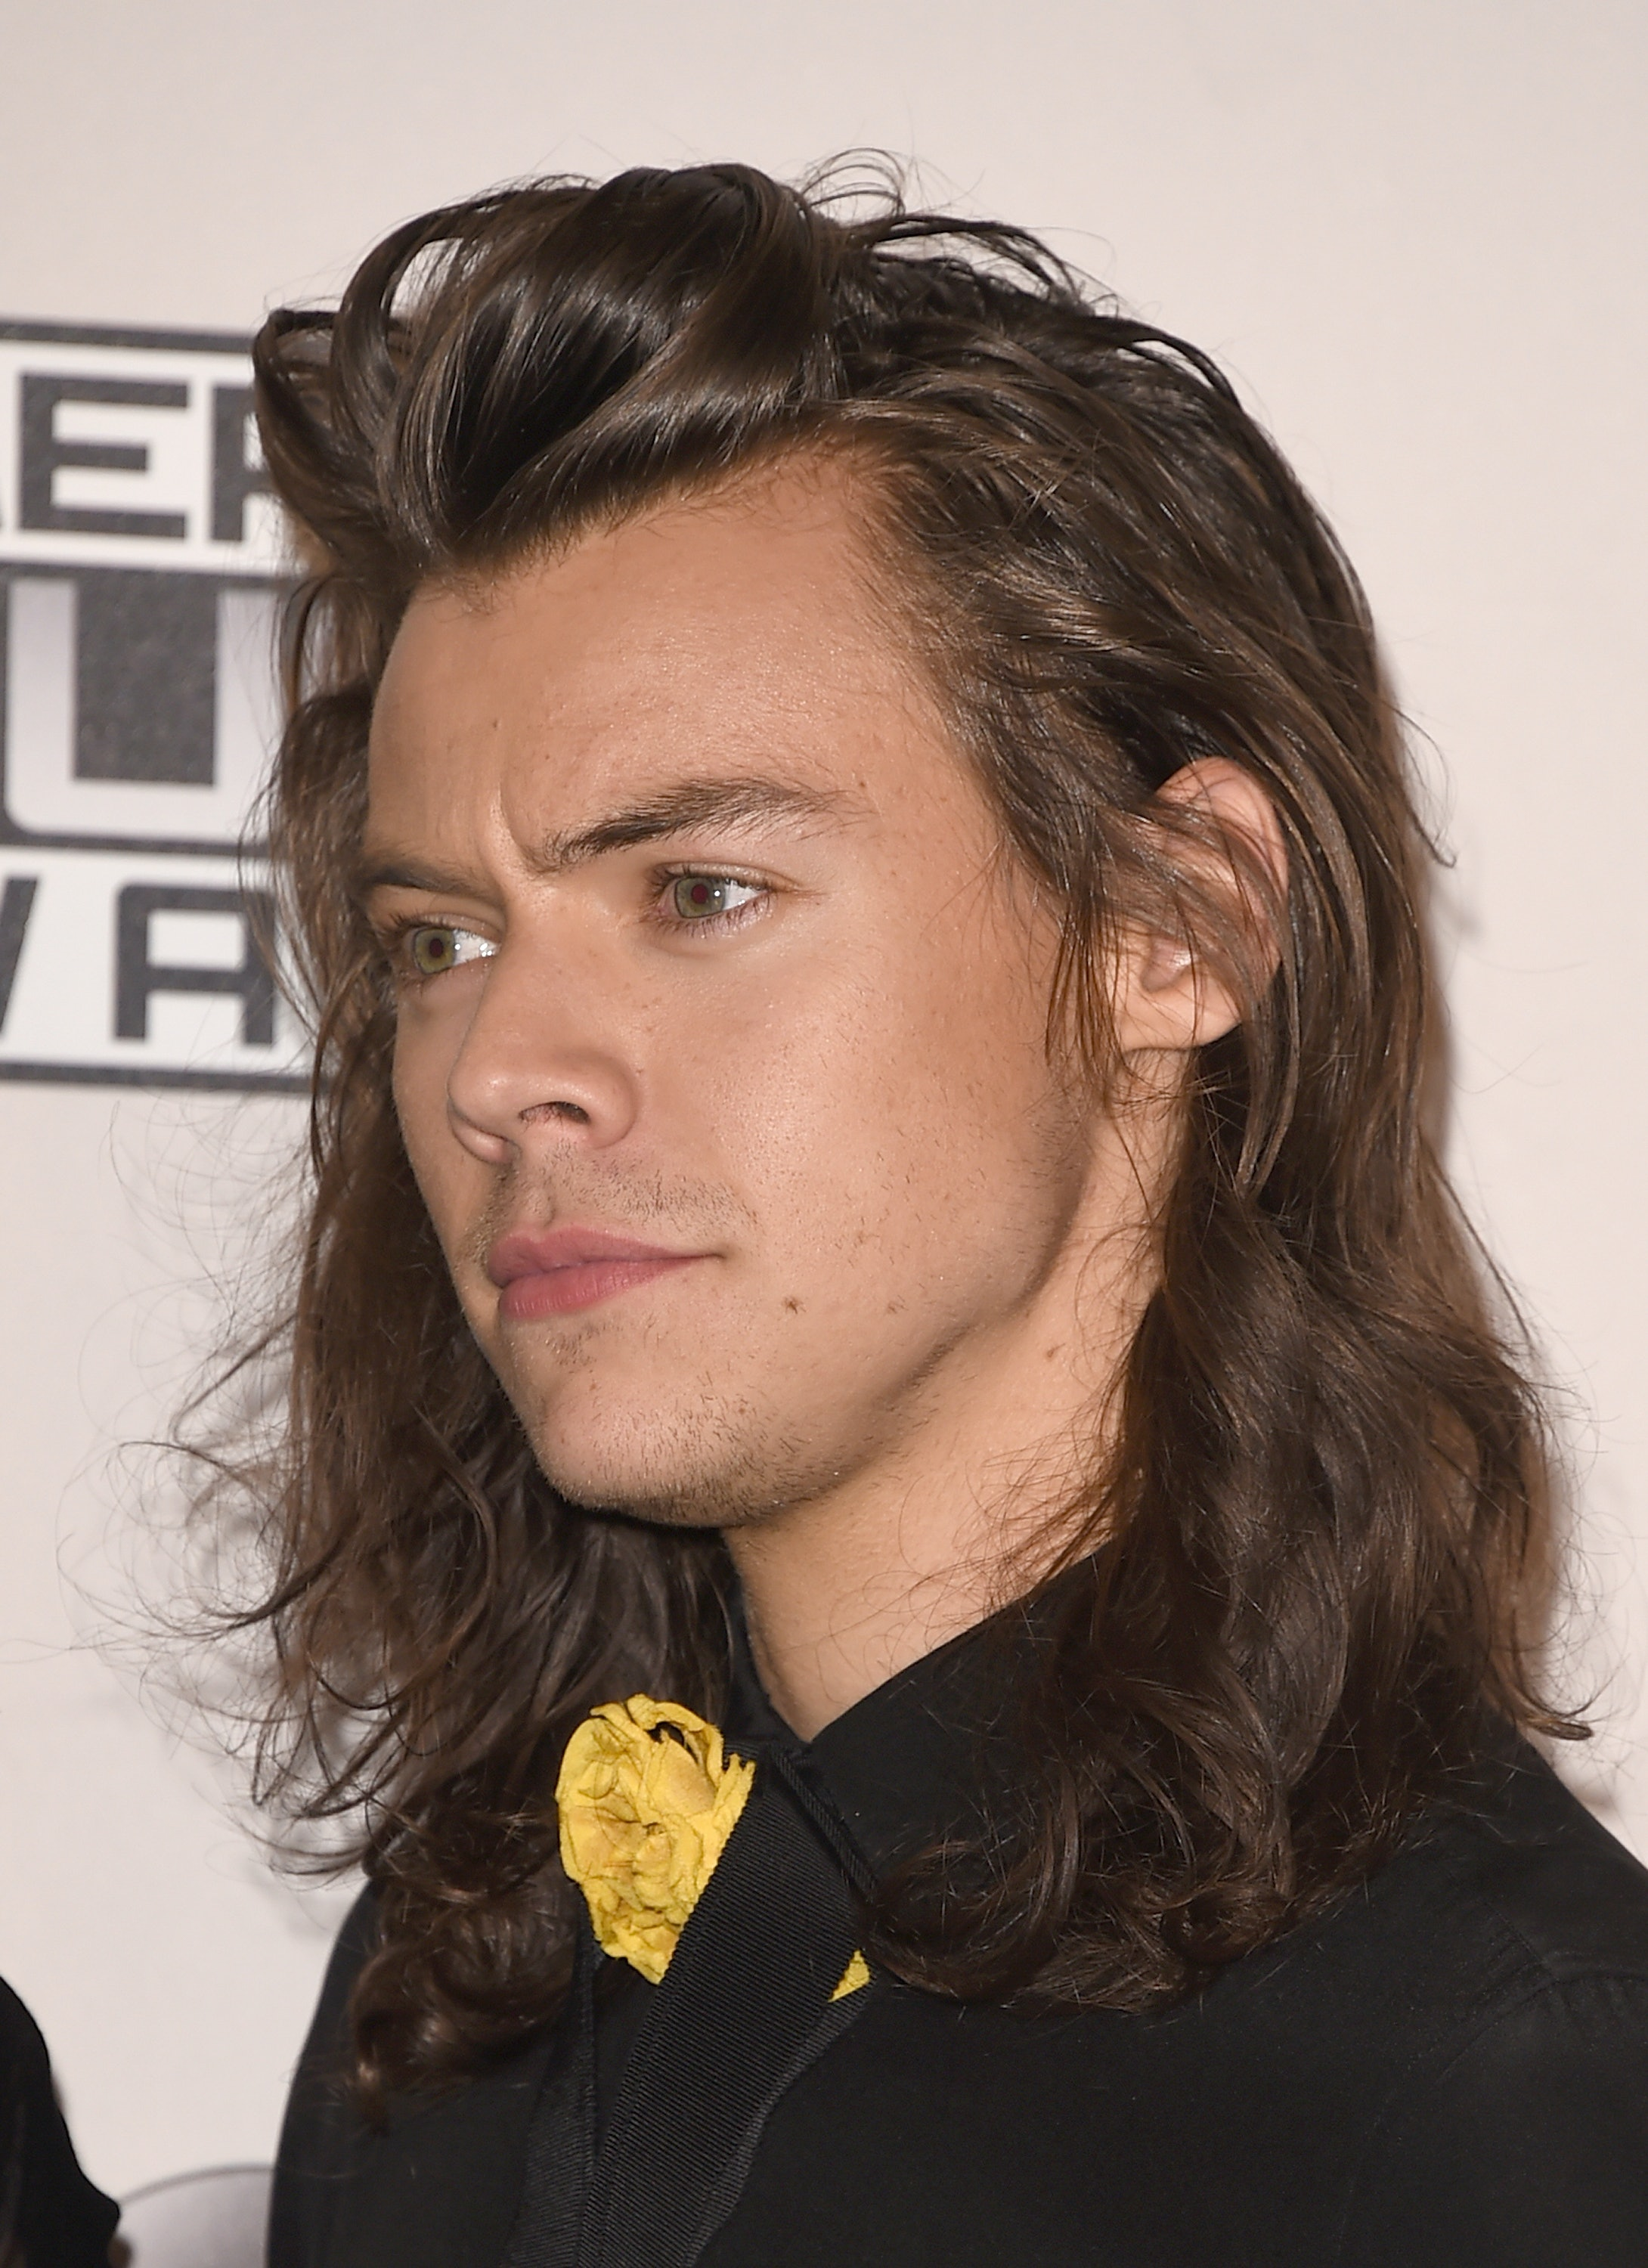 How To Emotionally Prepare For Harry Styles Future Short Haircut